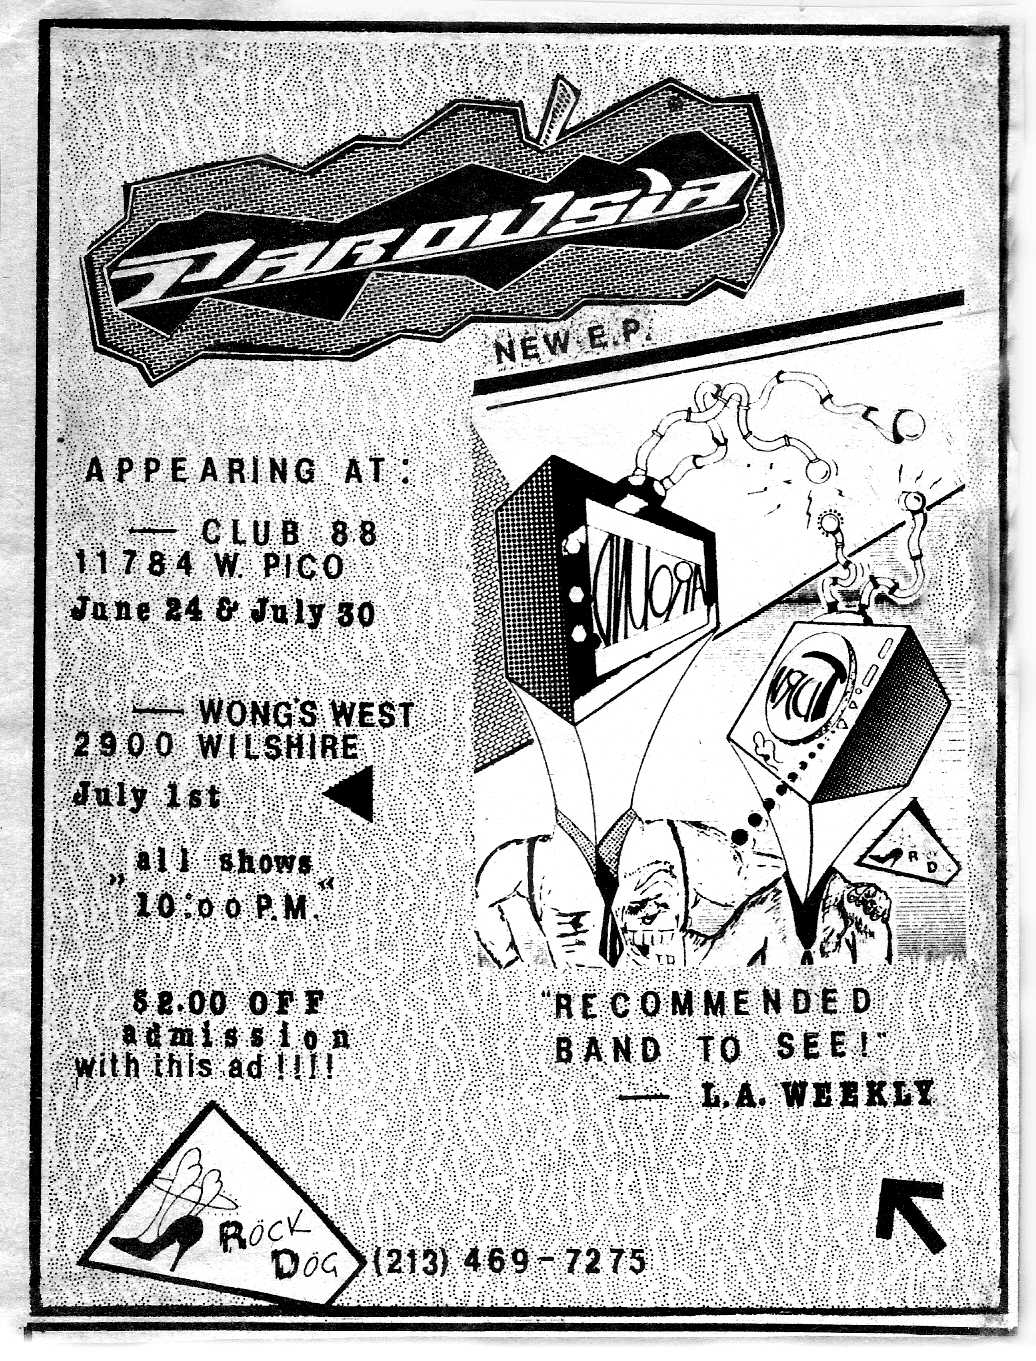 Parousia LA Weekly magazine ad promoting the Club 88 show, Madame Wong's show and TURNAROUND E.P.